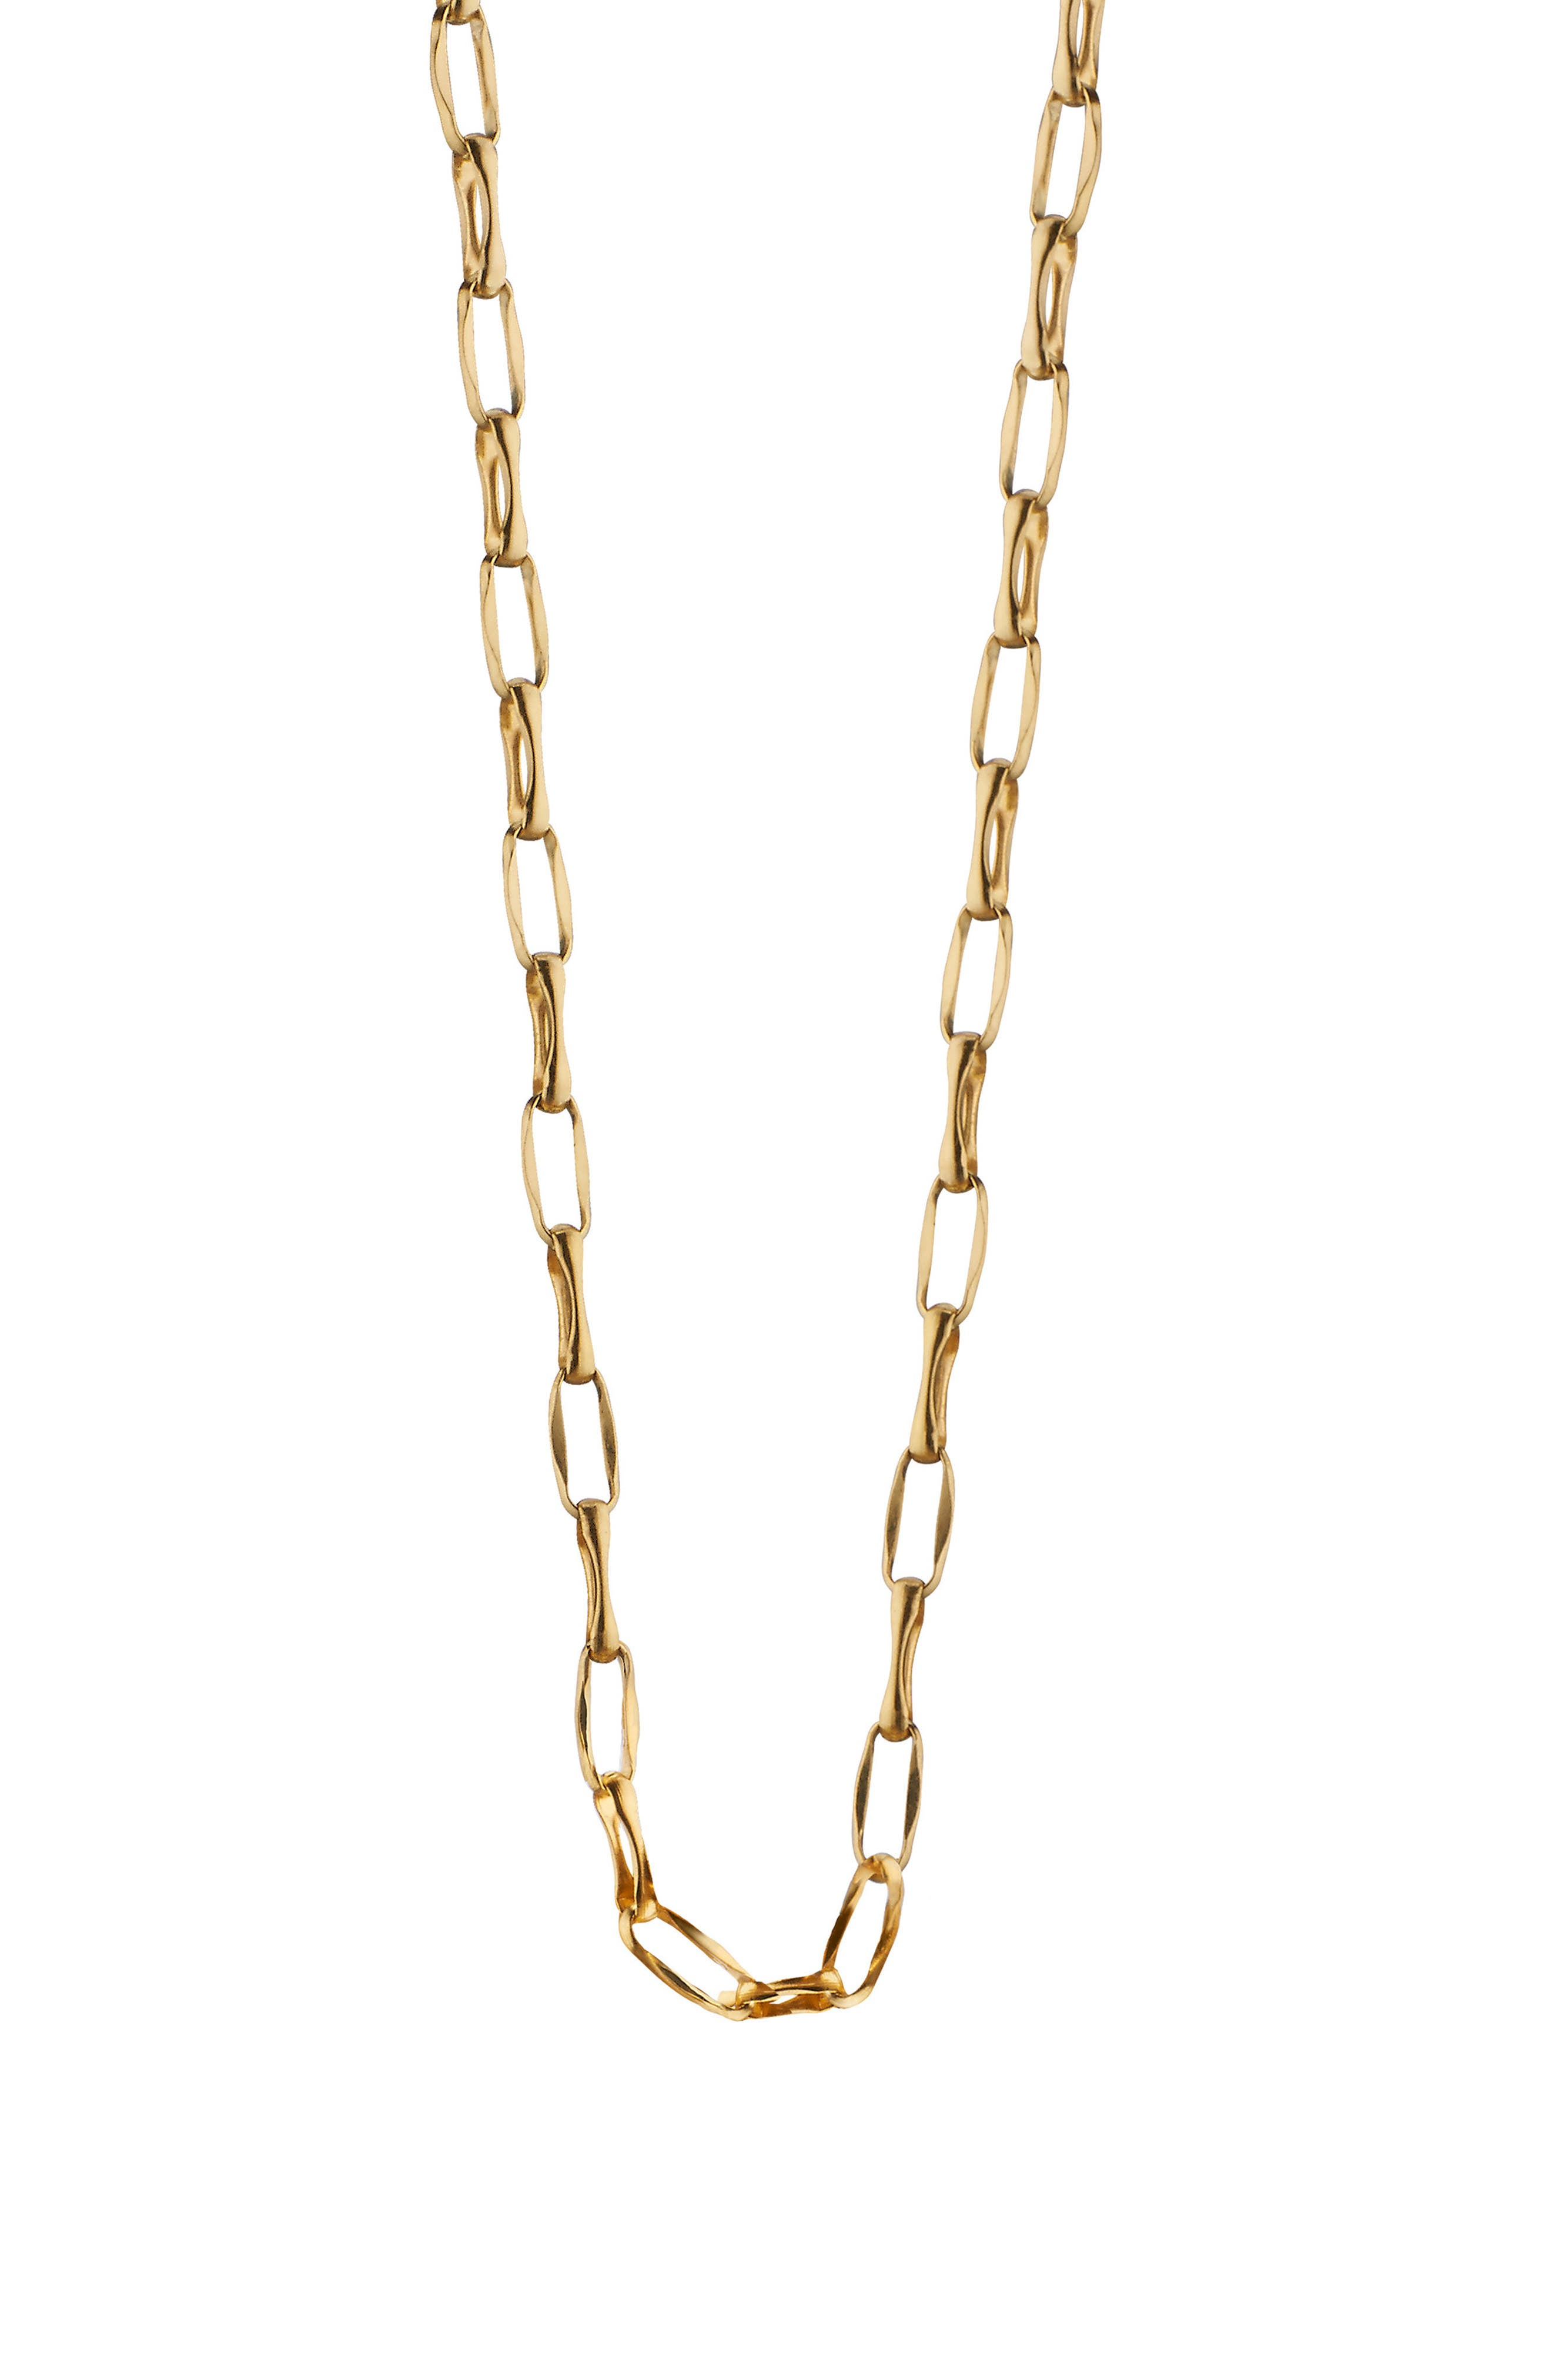 Belcher 18K Gold Chain,                         Main,                         color, 18K Yellow Gold